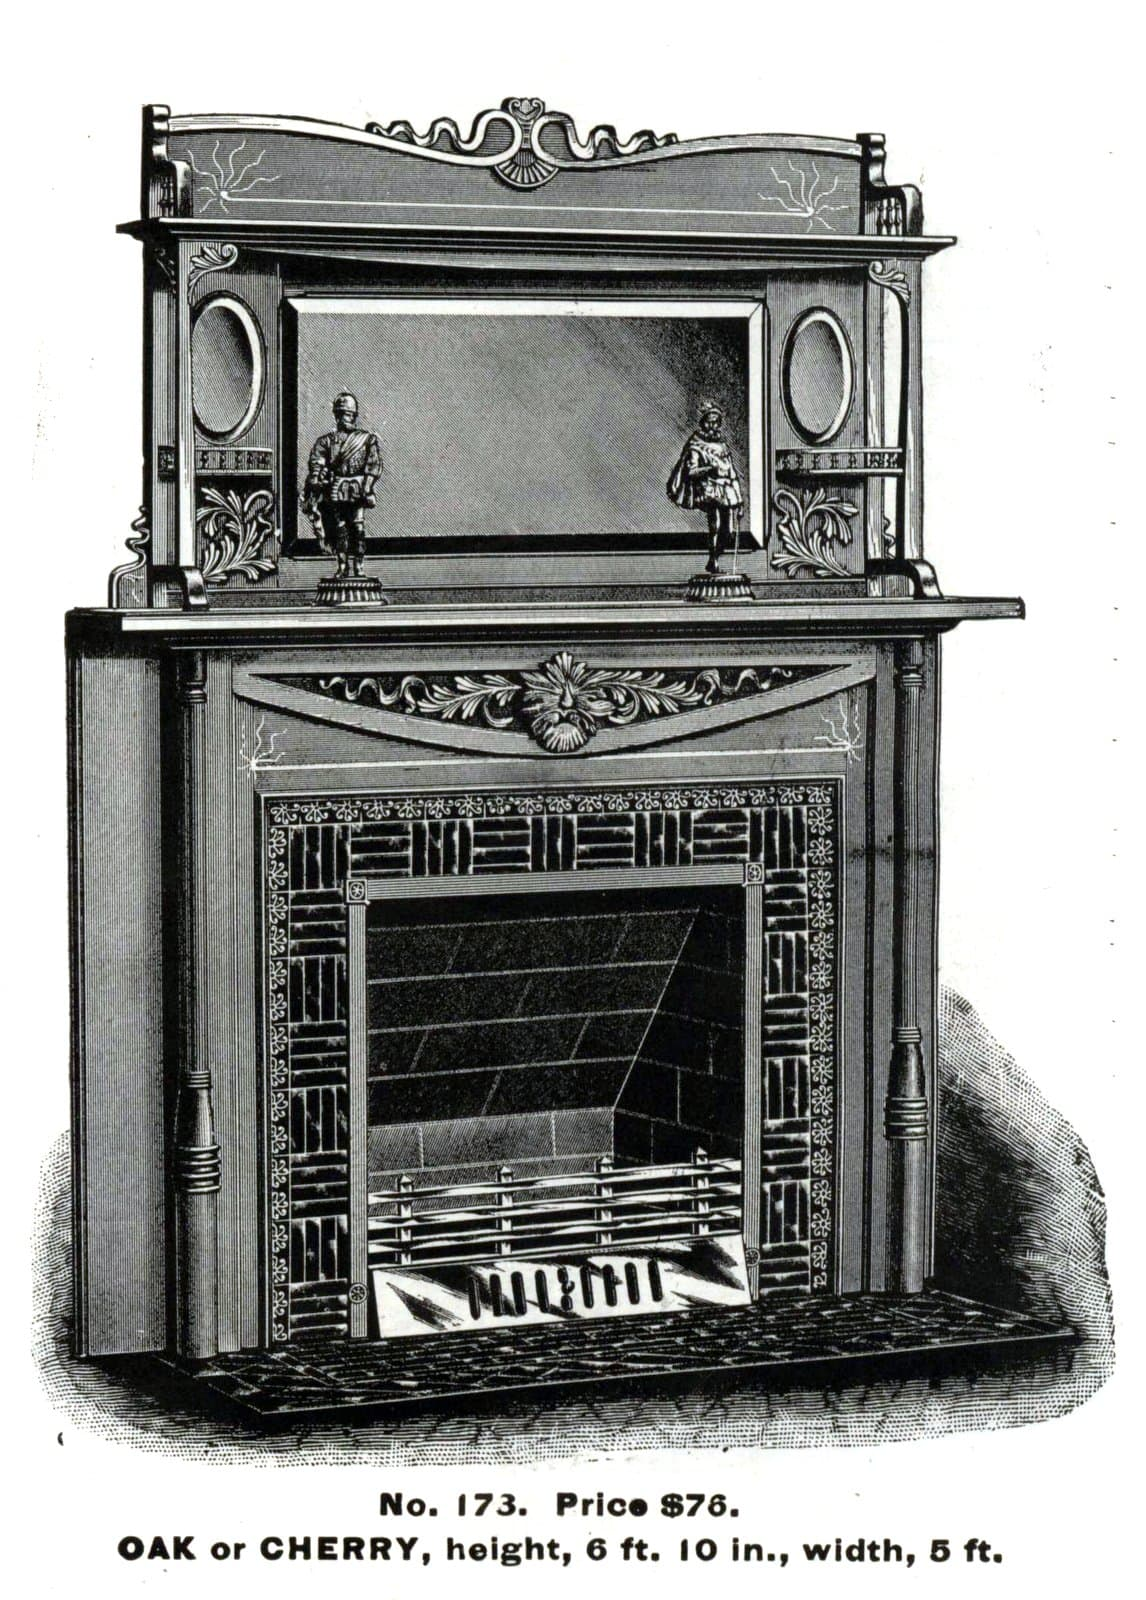 Antique Victorian fireplace surrounds by Morley Bros - 1880s (1)